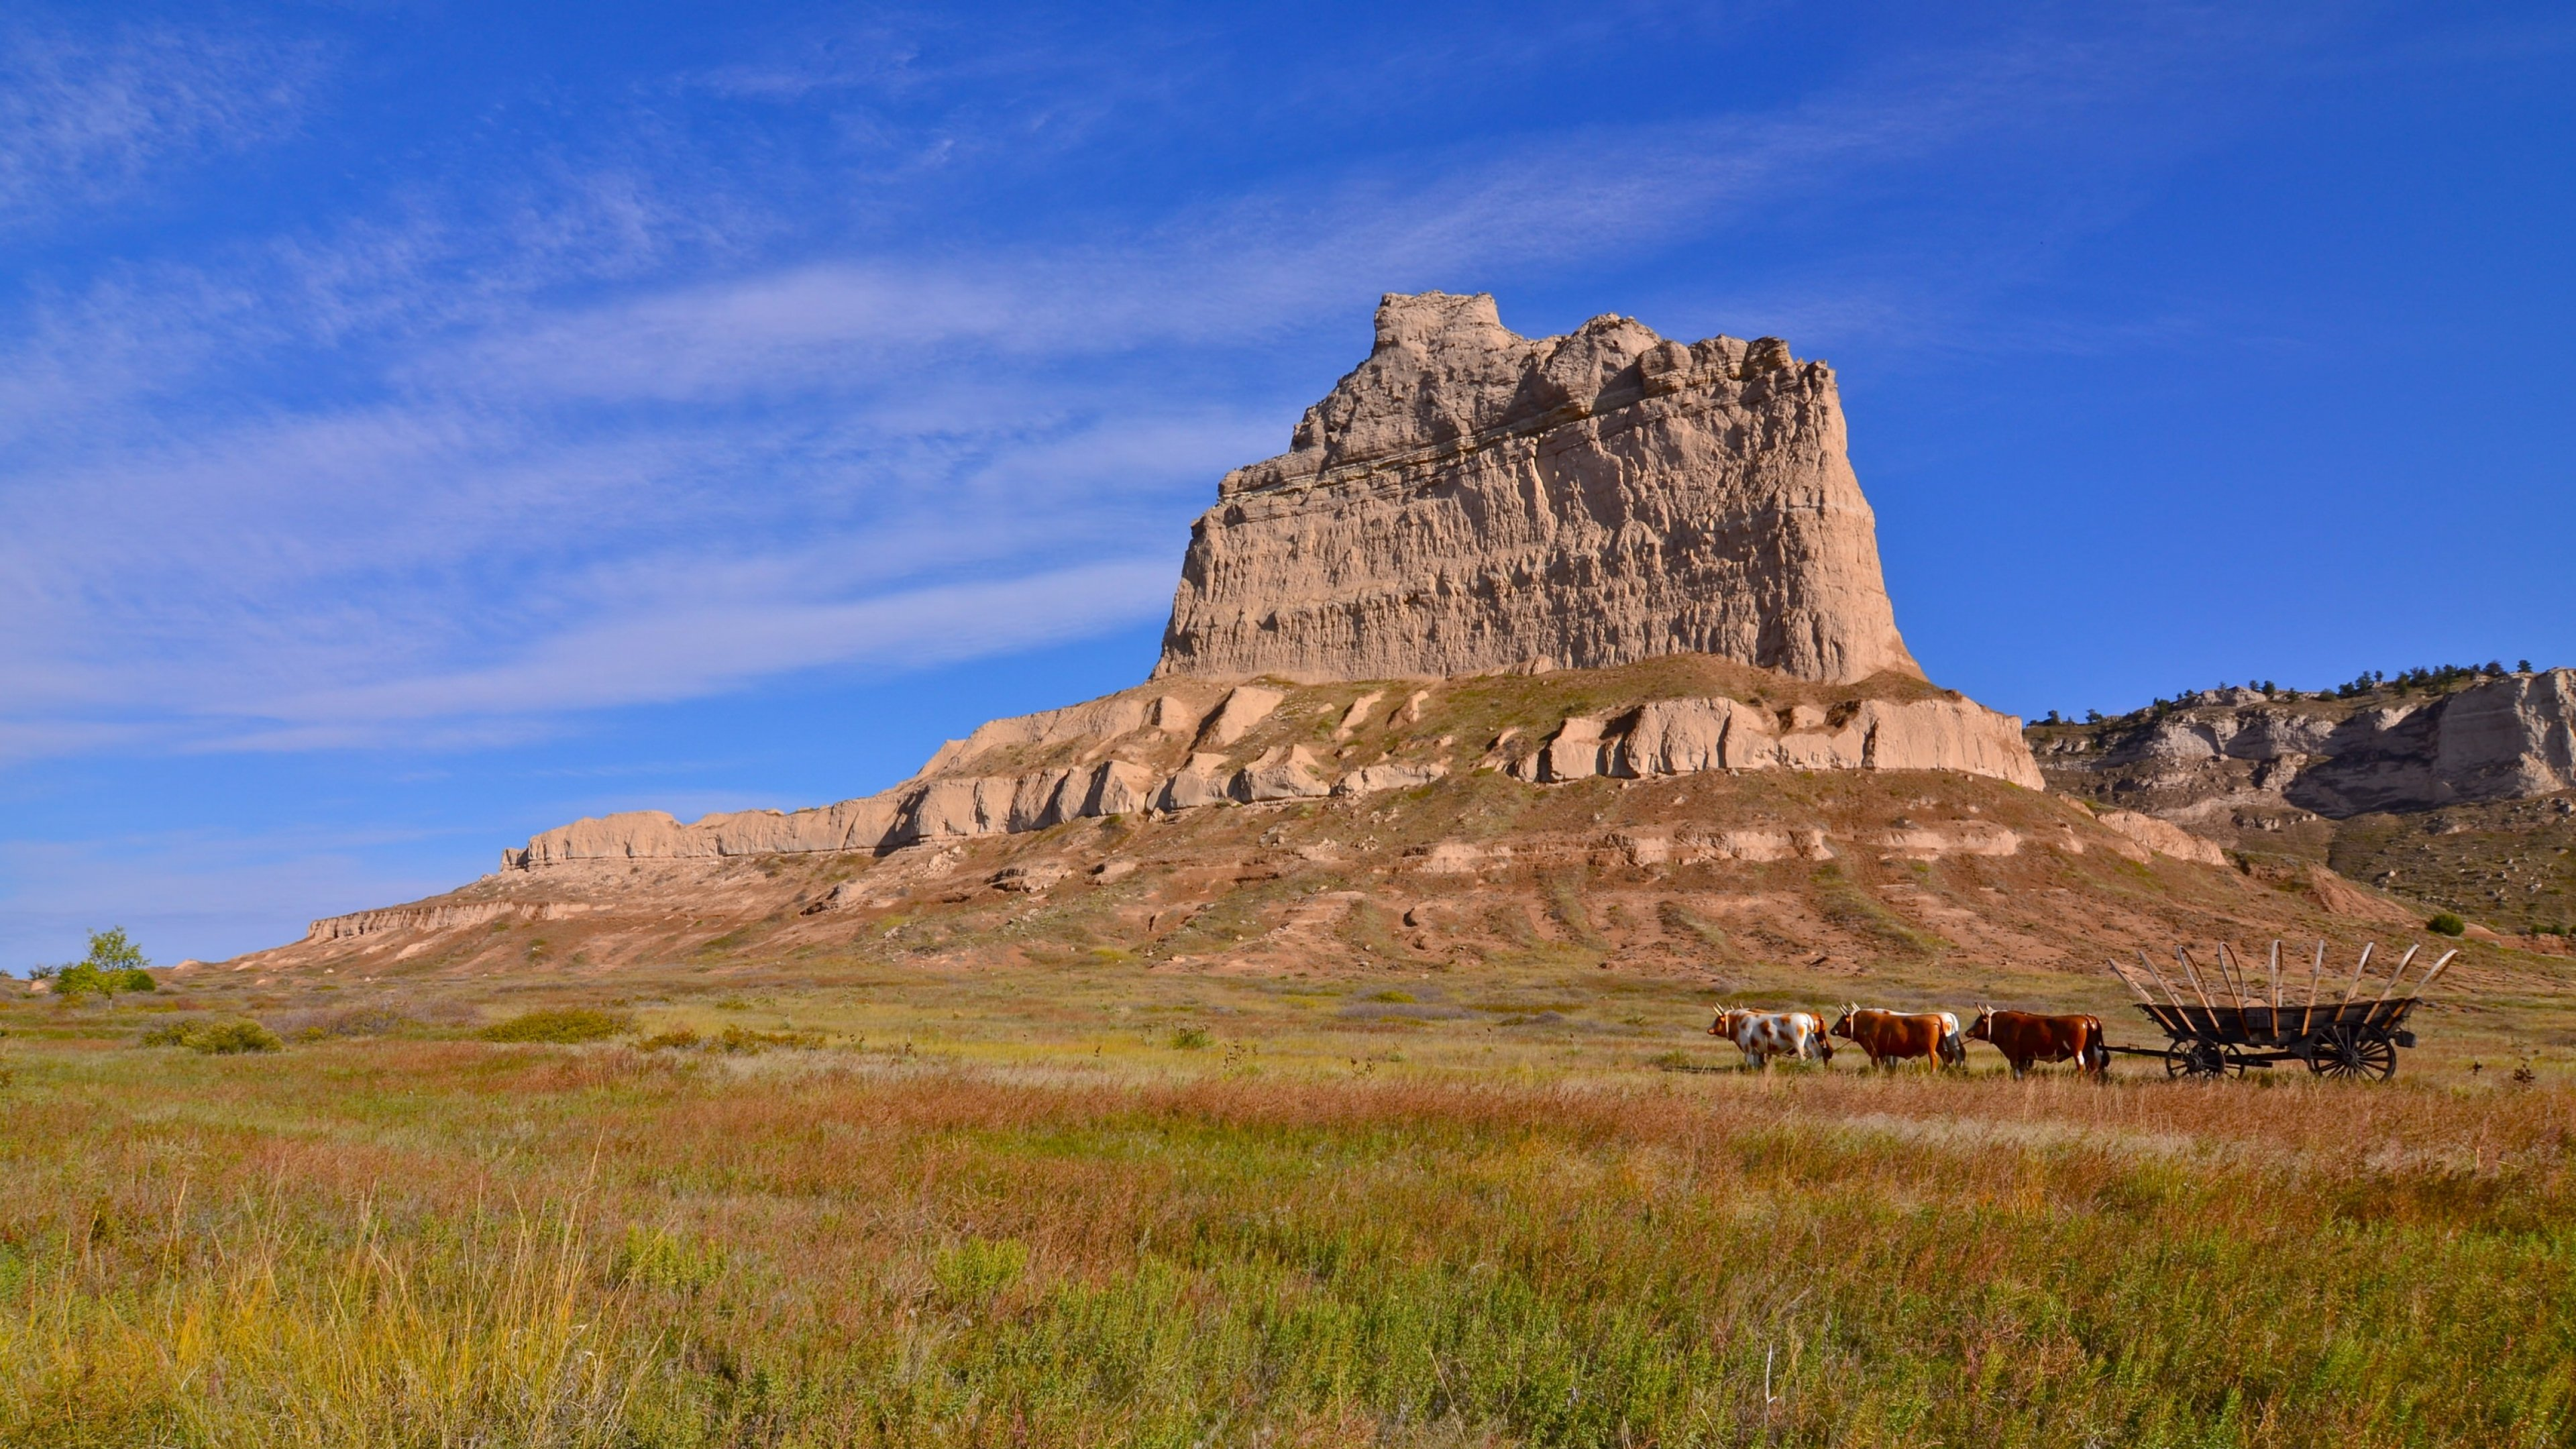 The sandstone fin of Scotts Bluff National Monument jutting out of a green prairie with an ox team pulling a wagon.